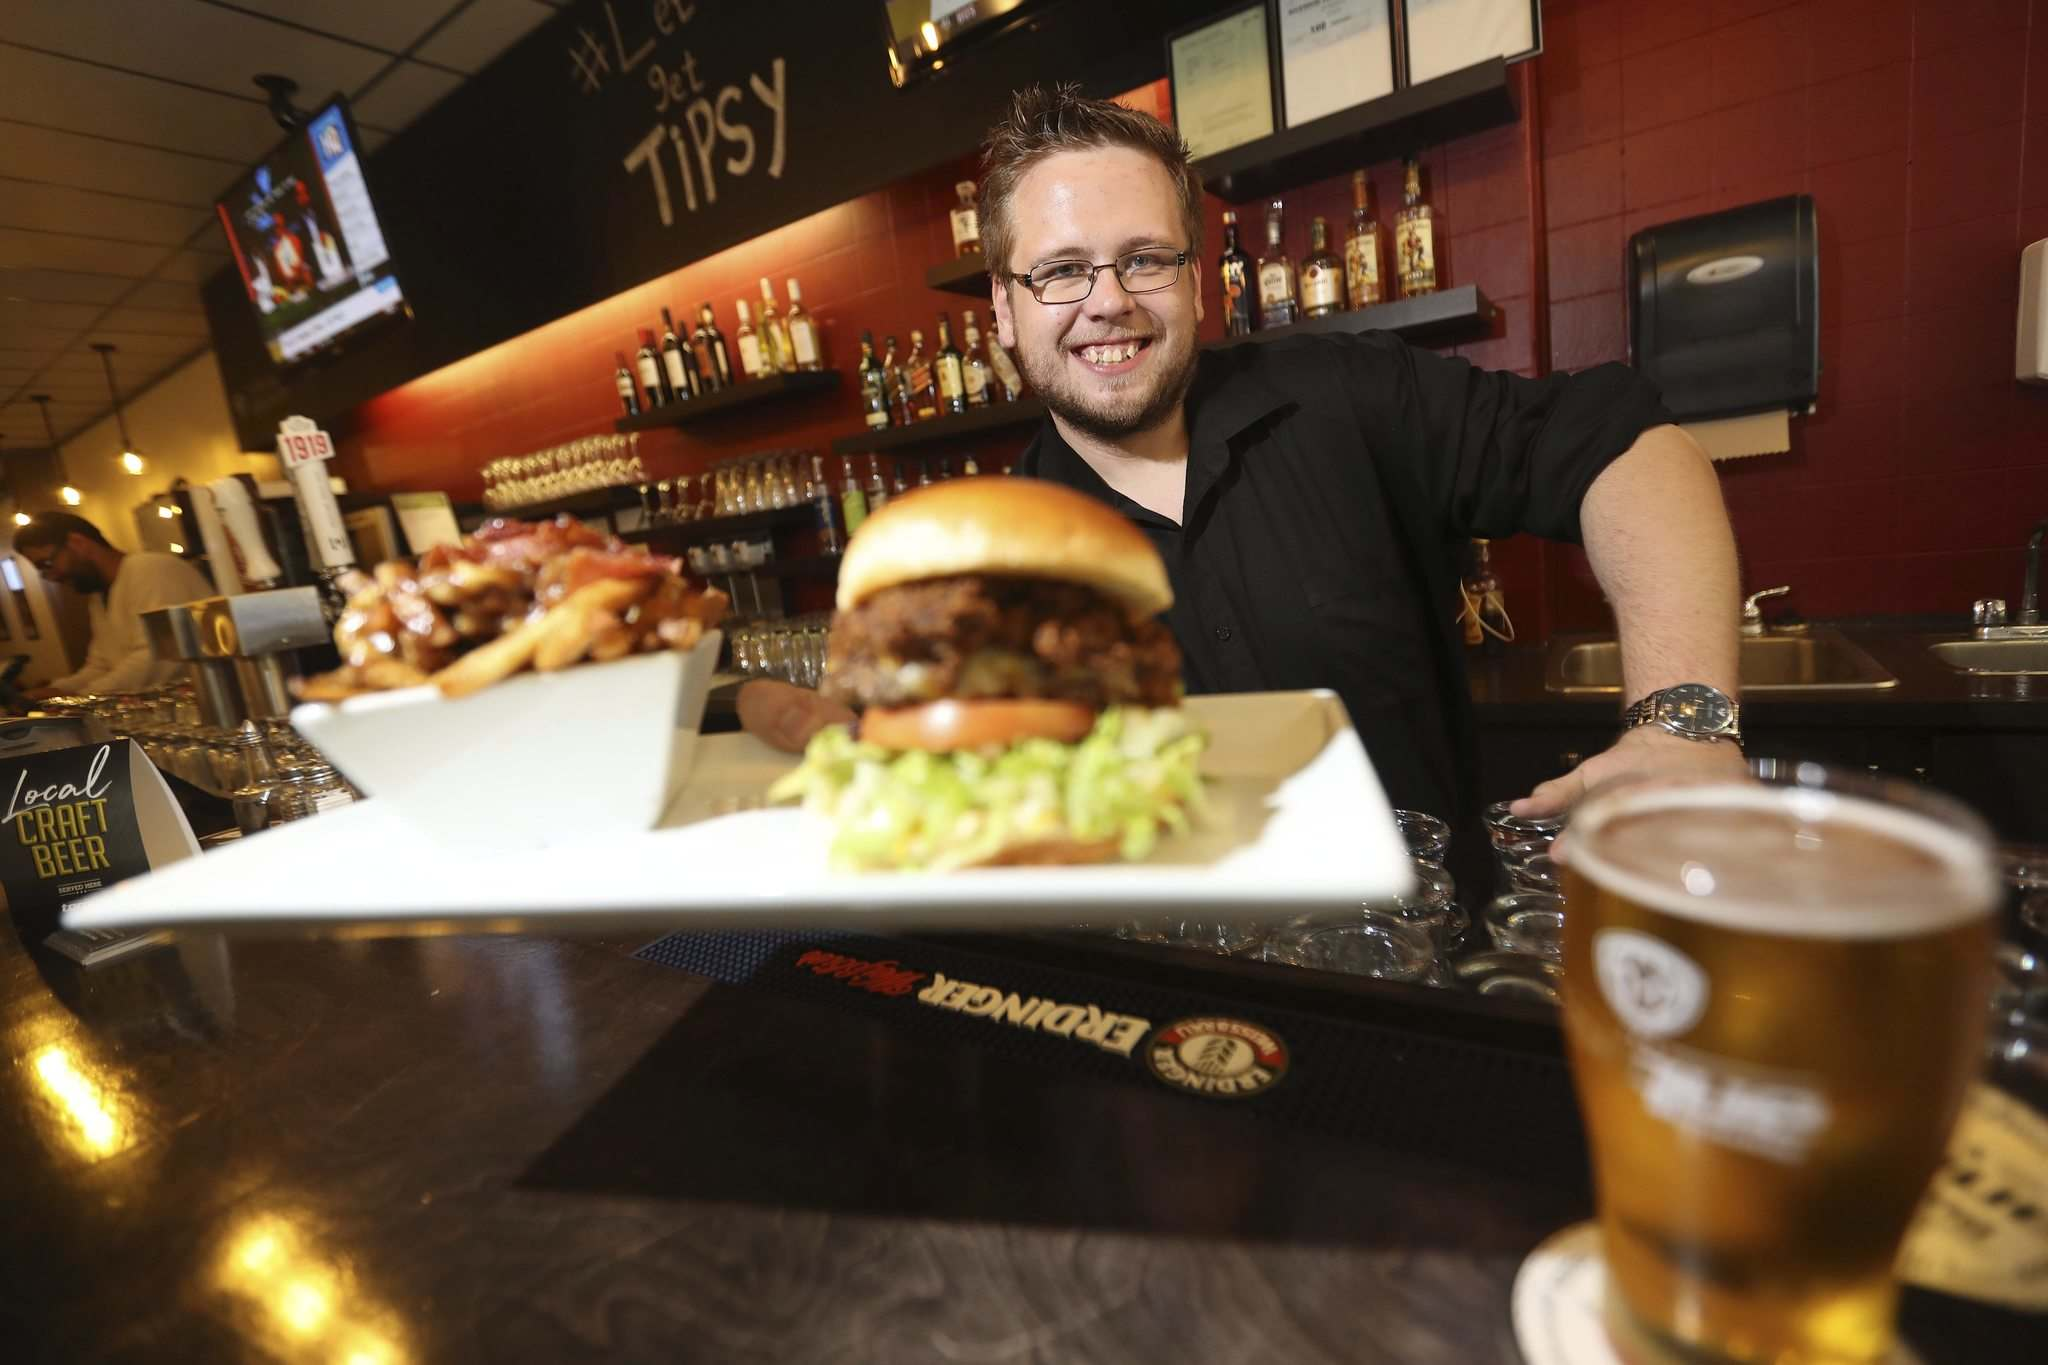 TREVOR HAGAN / WINNIPEG FREE PRESS</p><p>Josh Nesojednik, owner, holding the Bacon Poutine and the Winnipegger Burger at the Tipsy Cow.</p></p>